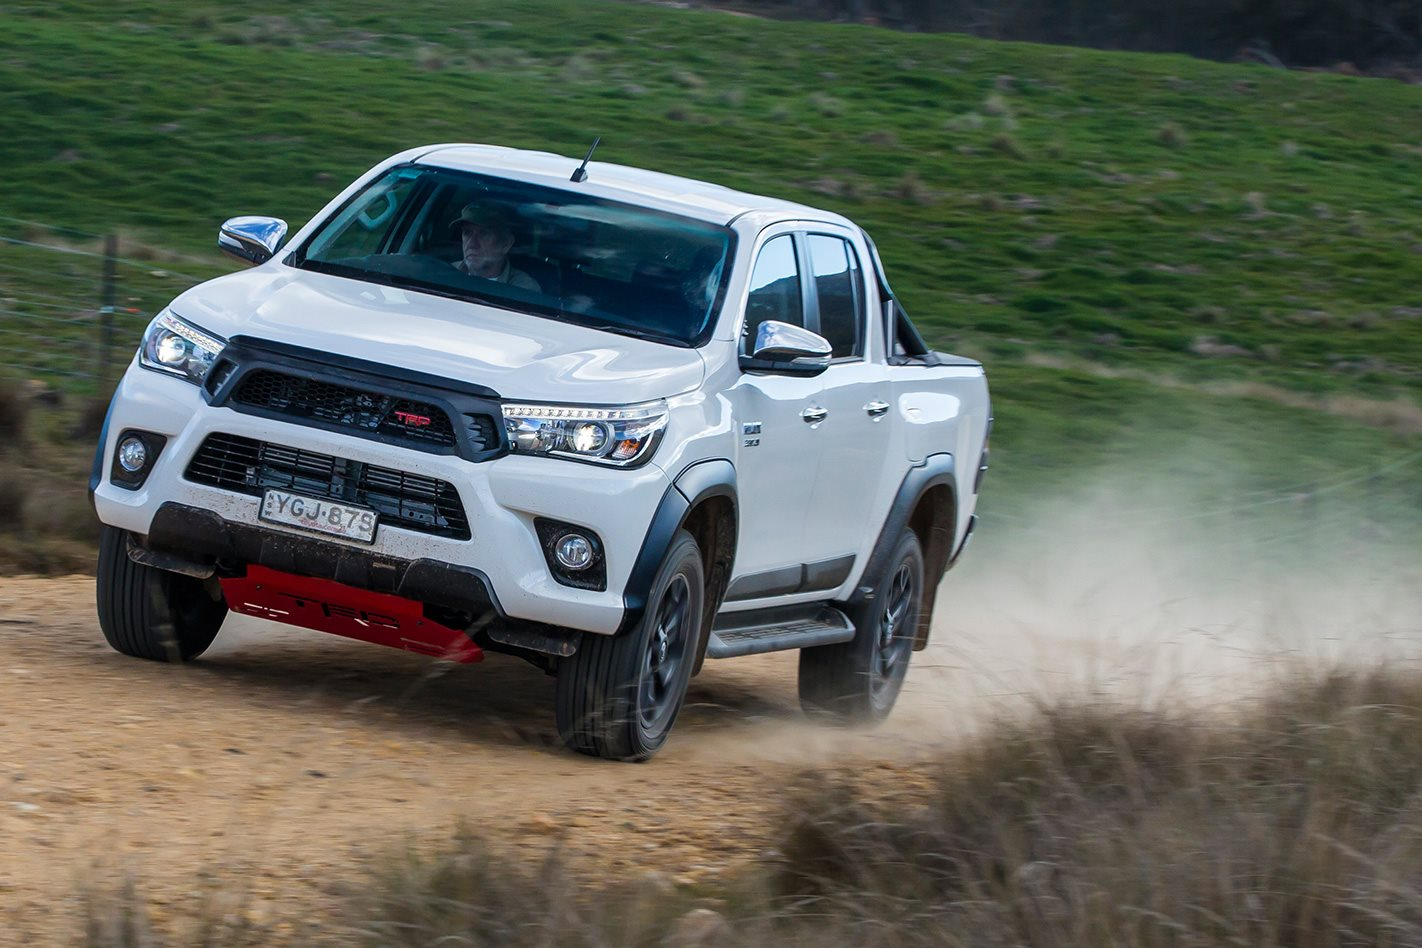 Toyota Hilux TRD on dirt road